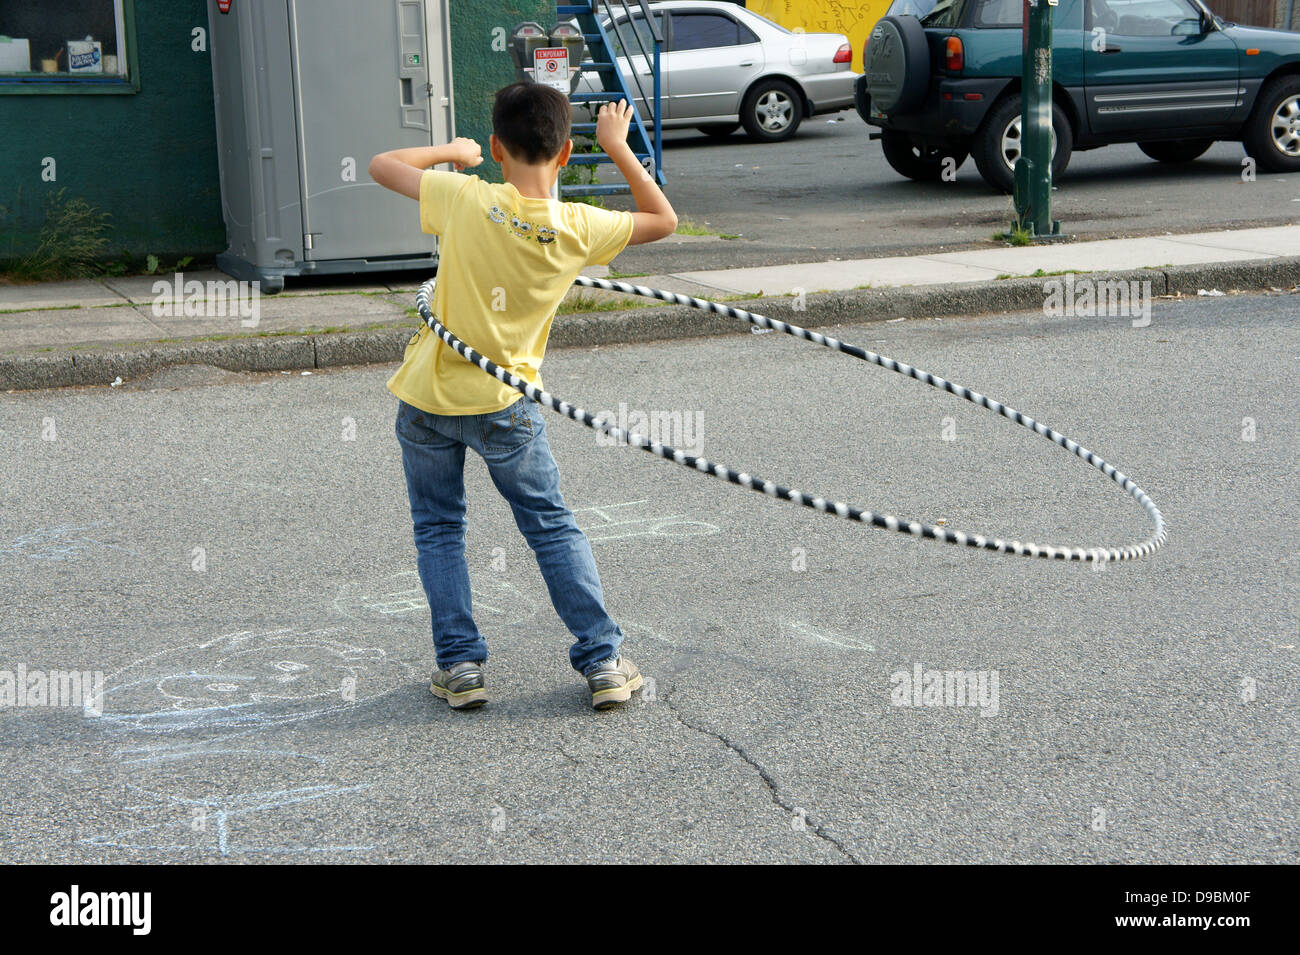 boy-twirling-a-large-hula-hoop-on-a-stre